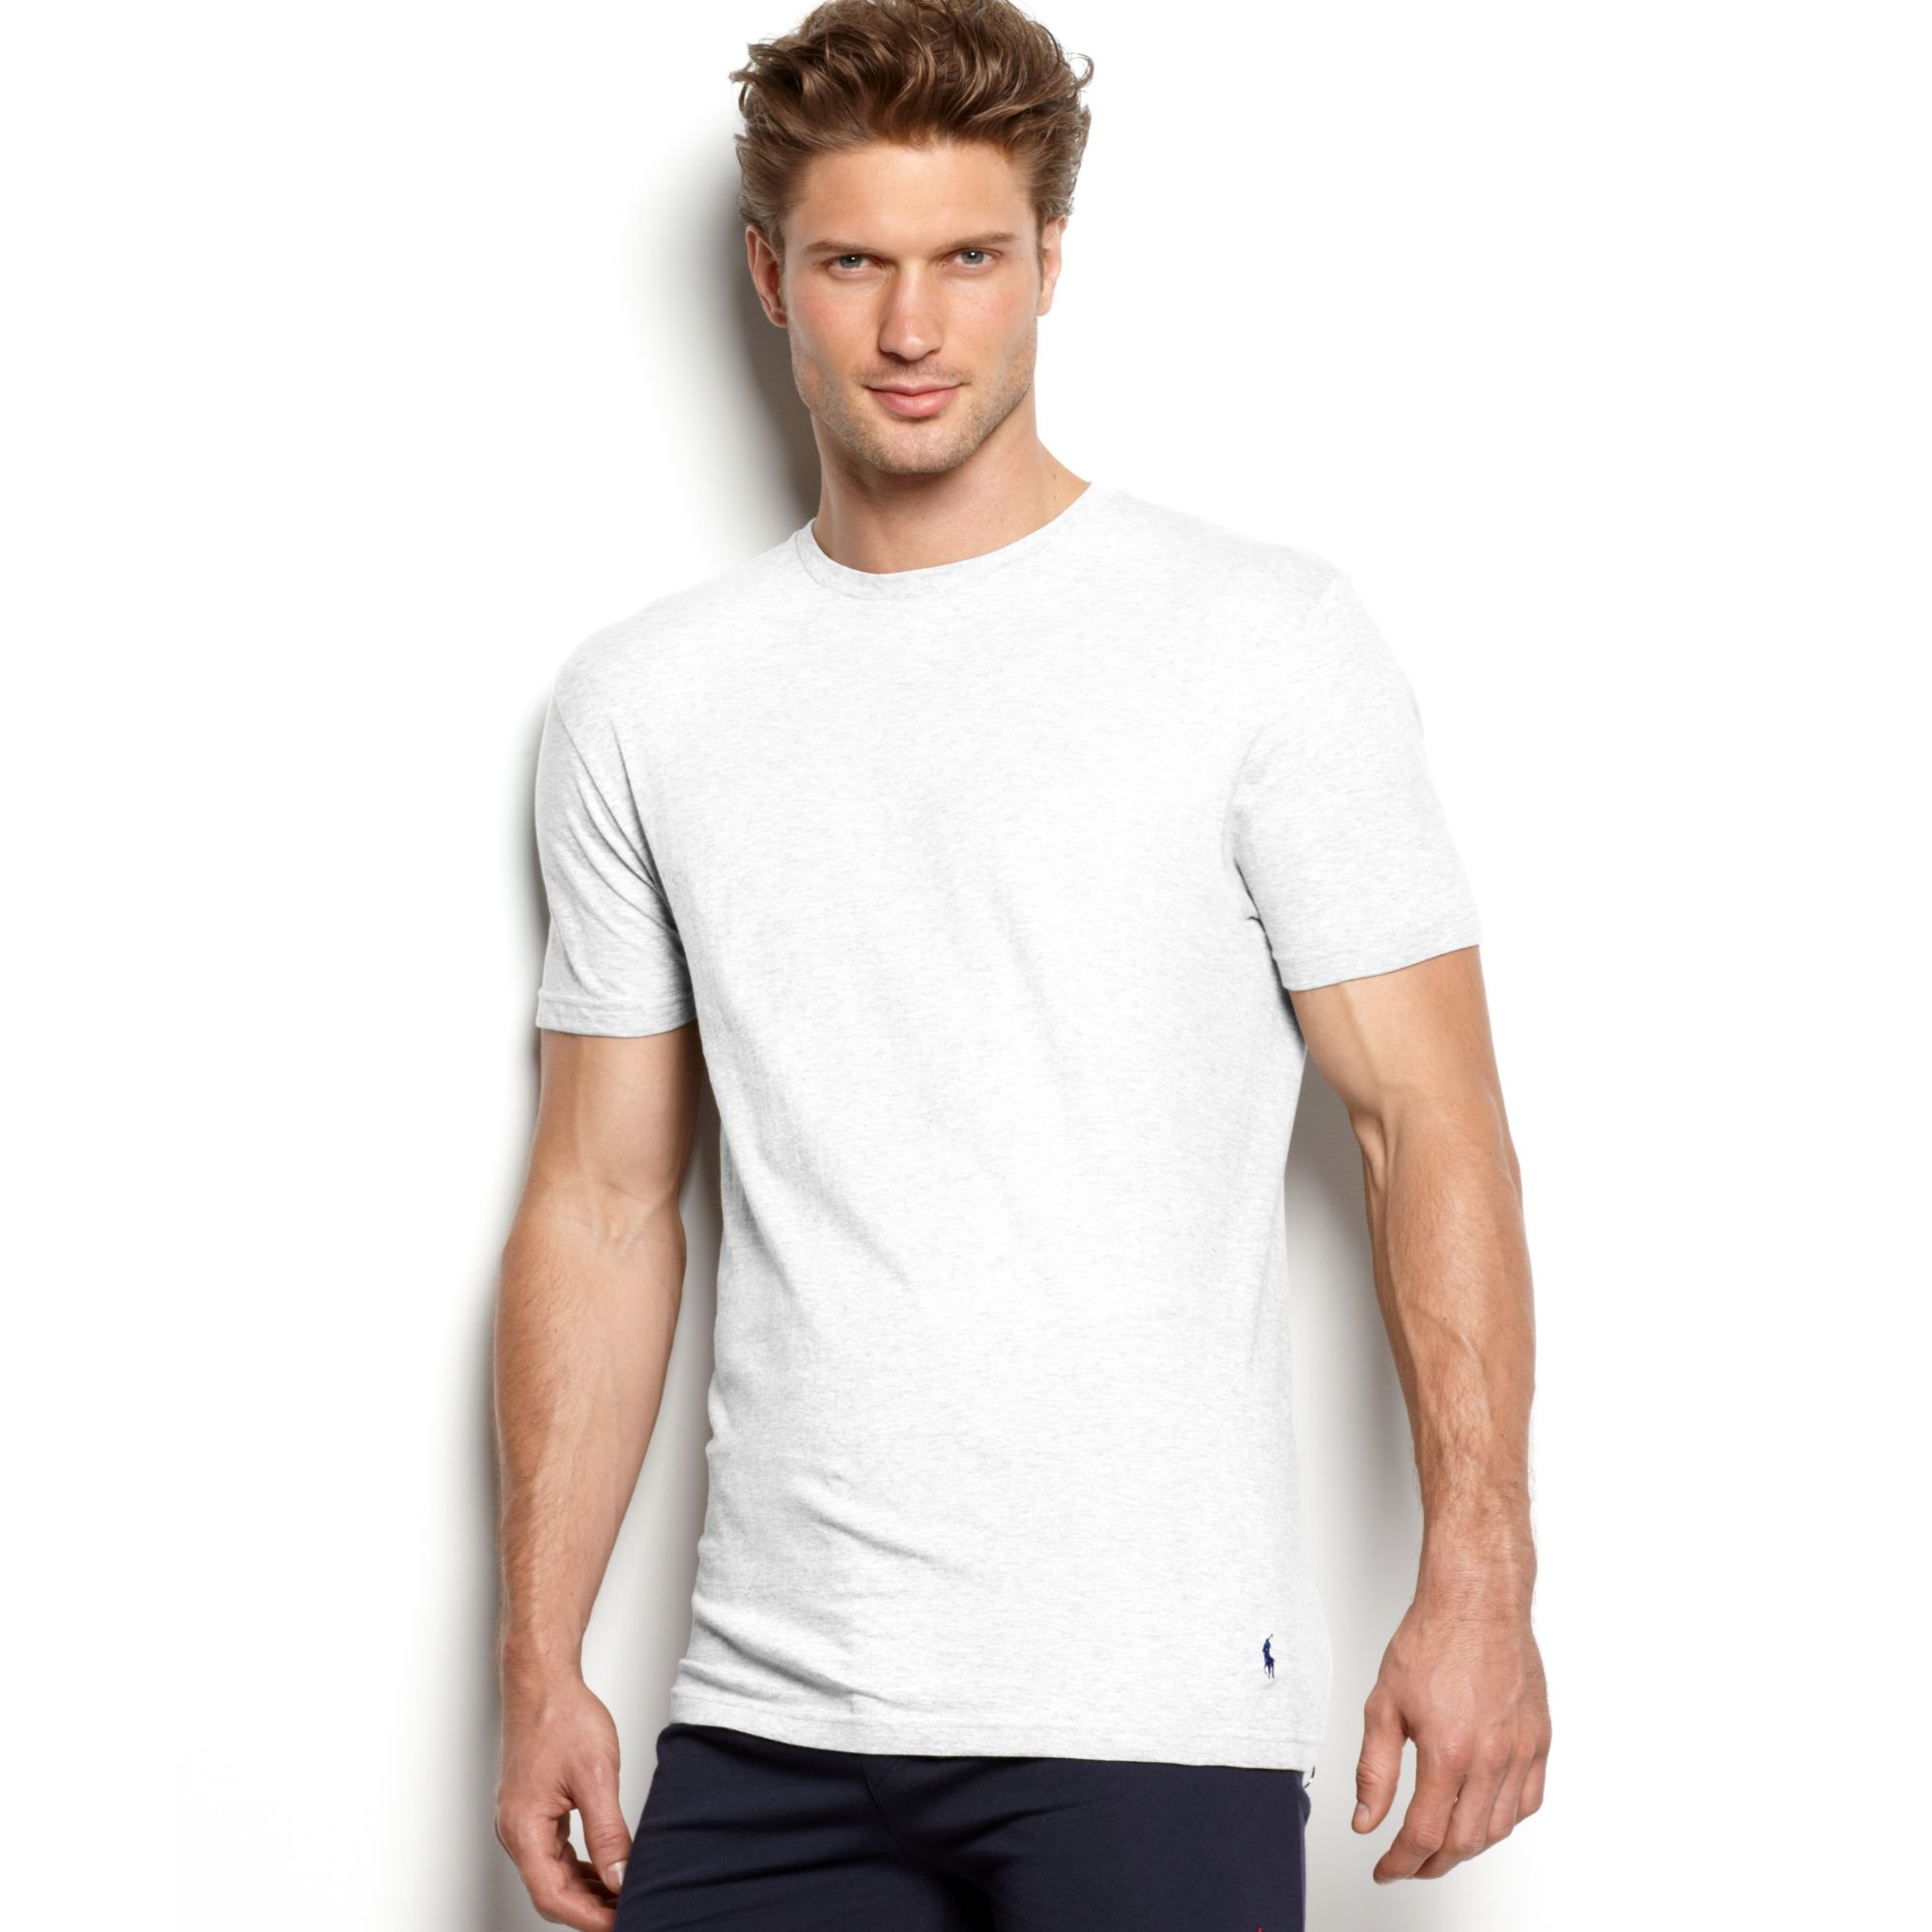 Ralph Lauren Celebrity Crew Neck Tshirt 3 Pack in White ...